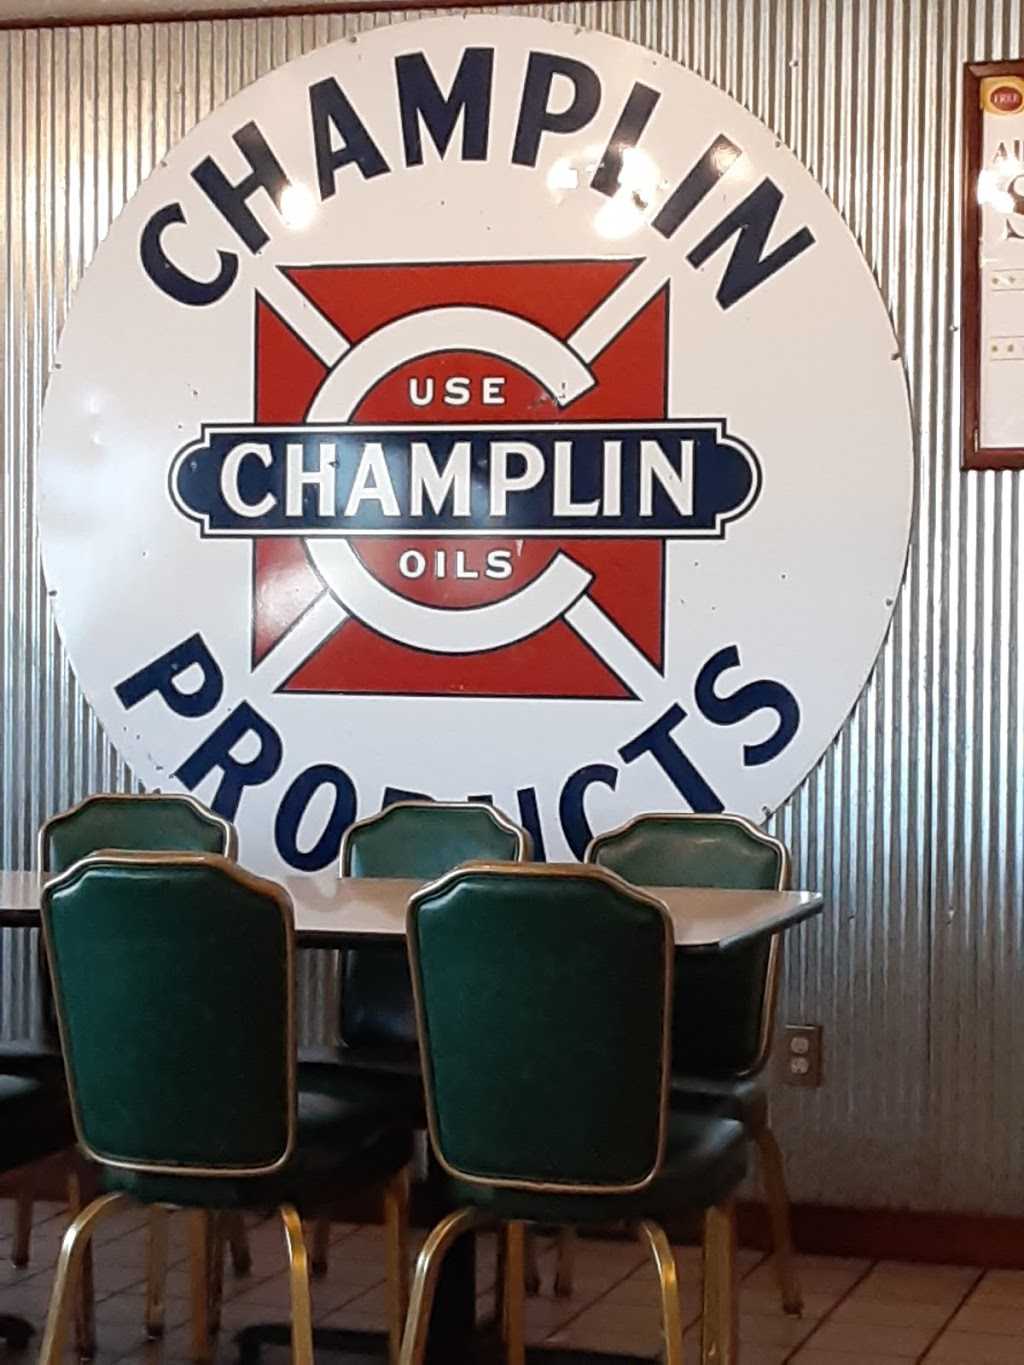 Marlins Family Restaurant   restaurant   3850 N Cliff Ave, Sioux Falls, SD 57104, USA   6053327259 OR +1 605-332-7259